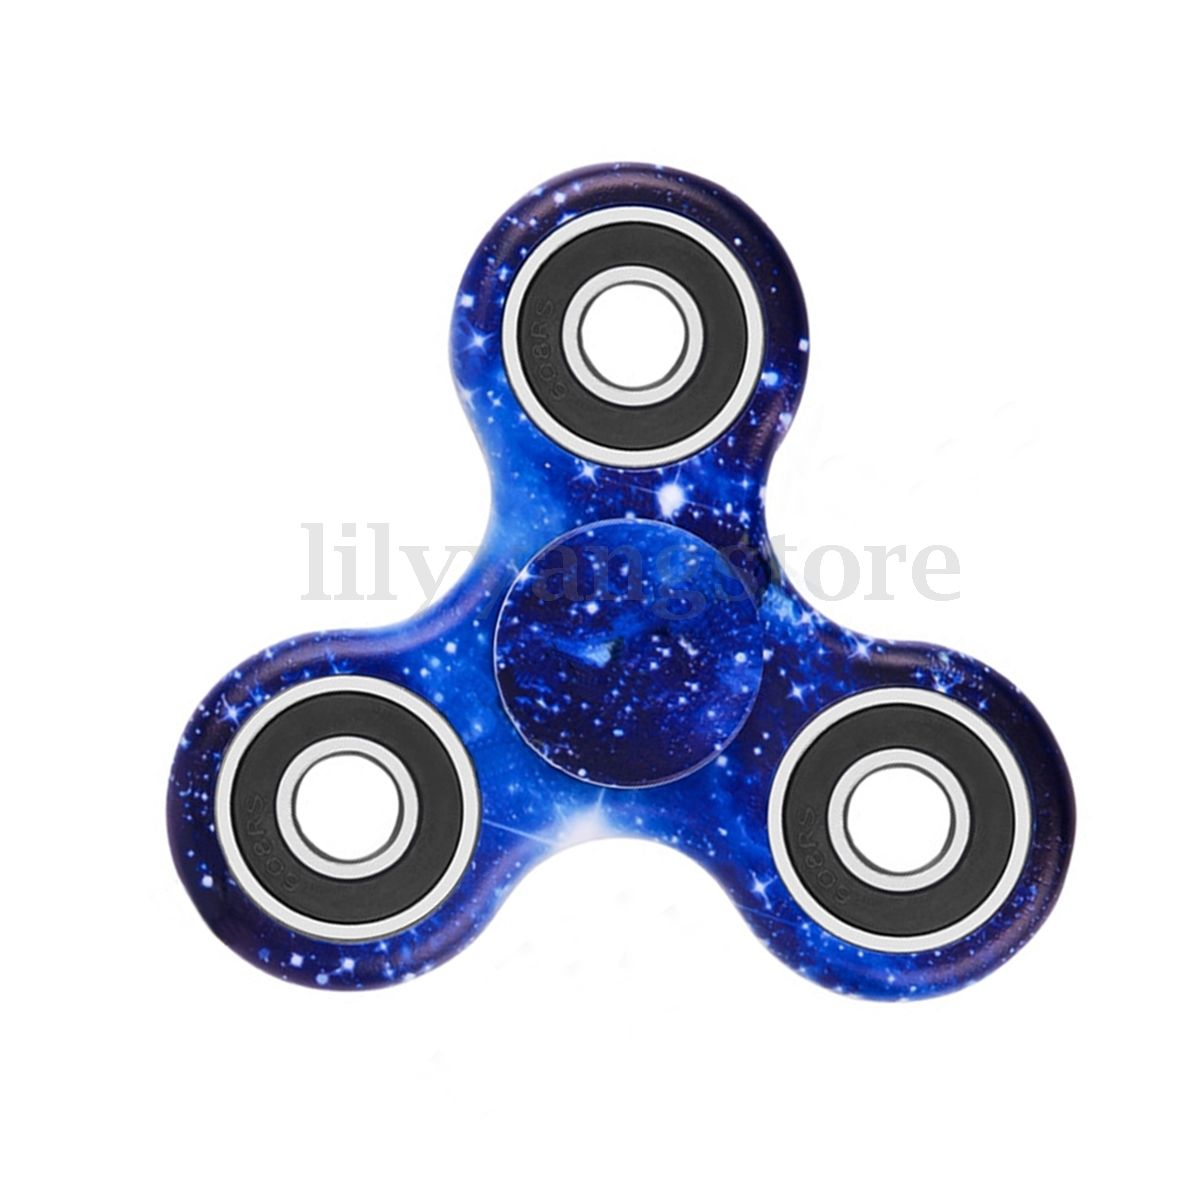 3D Fidget Hand Finger Spinner EDC Focus Stress Reliever Toys Purple Galaxy Sky